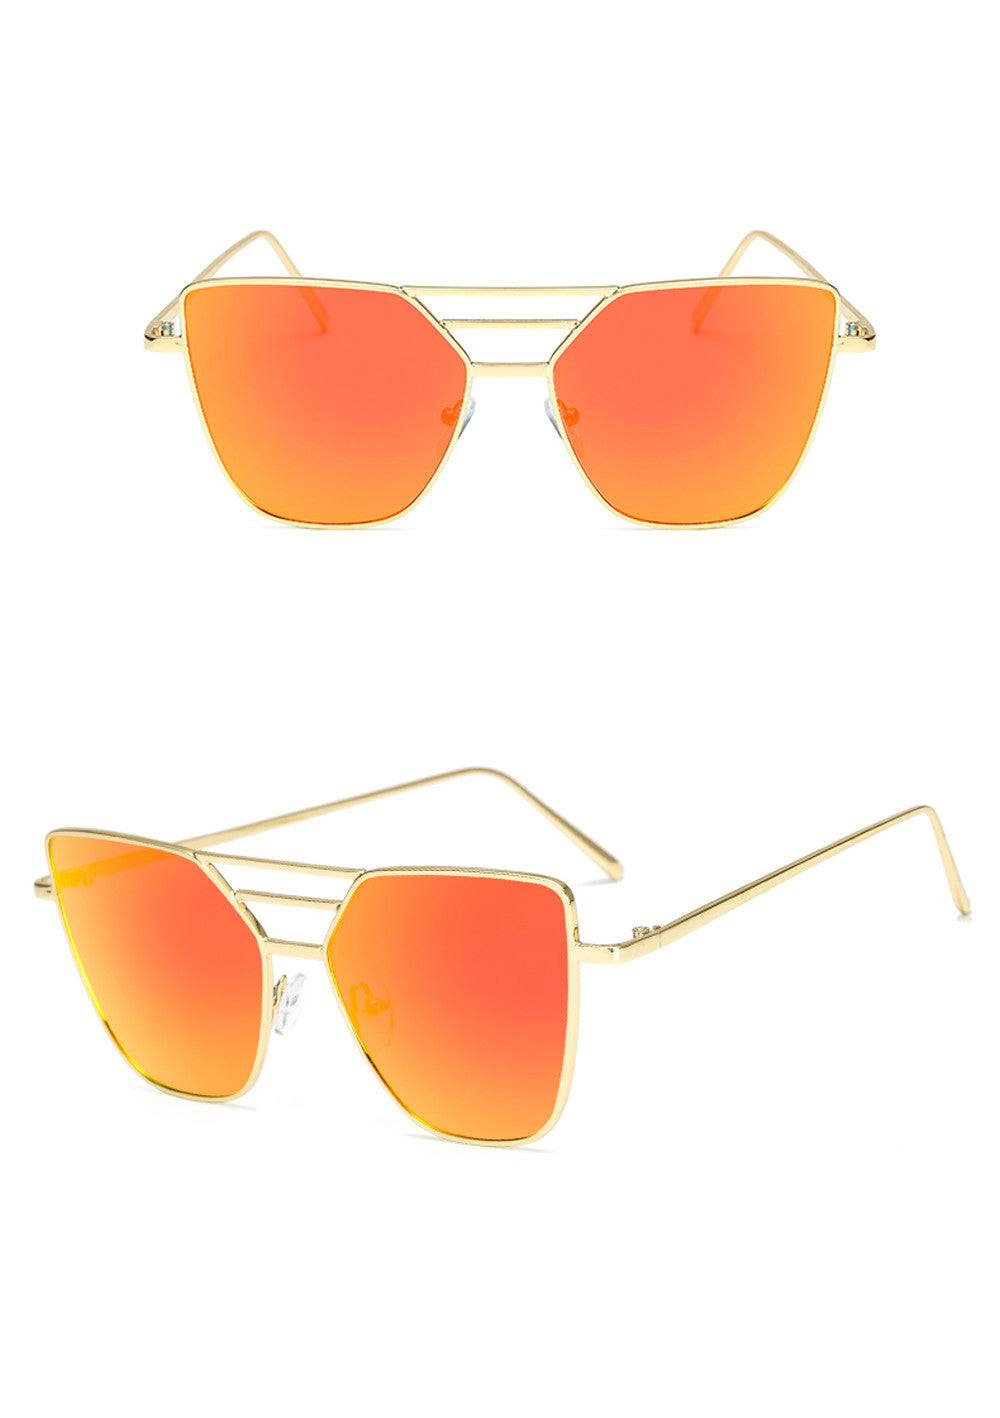 Reflect Yourself Sunglasses